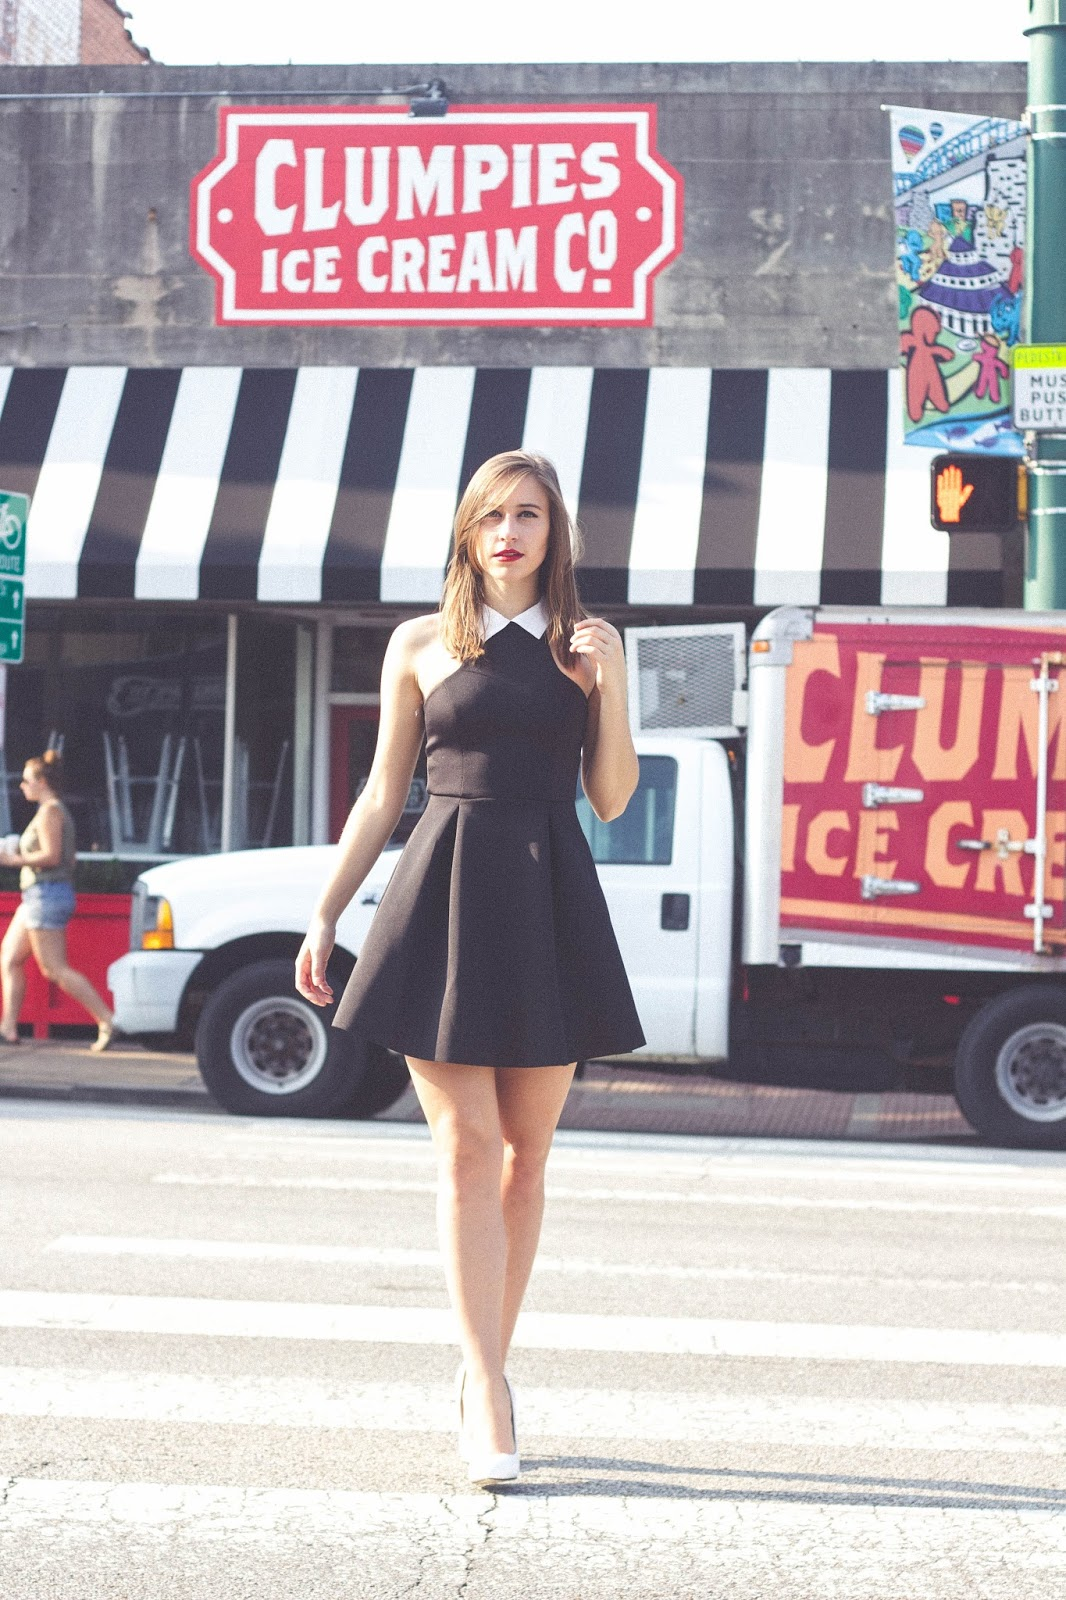 vintage, style, retro, taylor swift style, 60's style, modern, mod, clumpies ice cream, ice cream shop, fashion shoot, fashion photography, film, photography, chattanooga, unique vintage, style blogger, black skater dress, white pumps, red lips, classic  look,